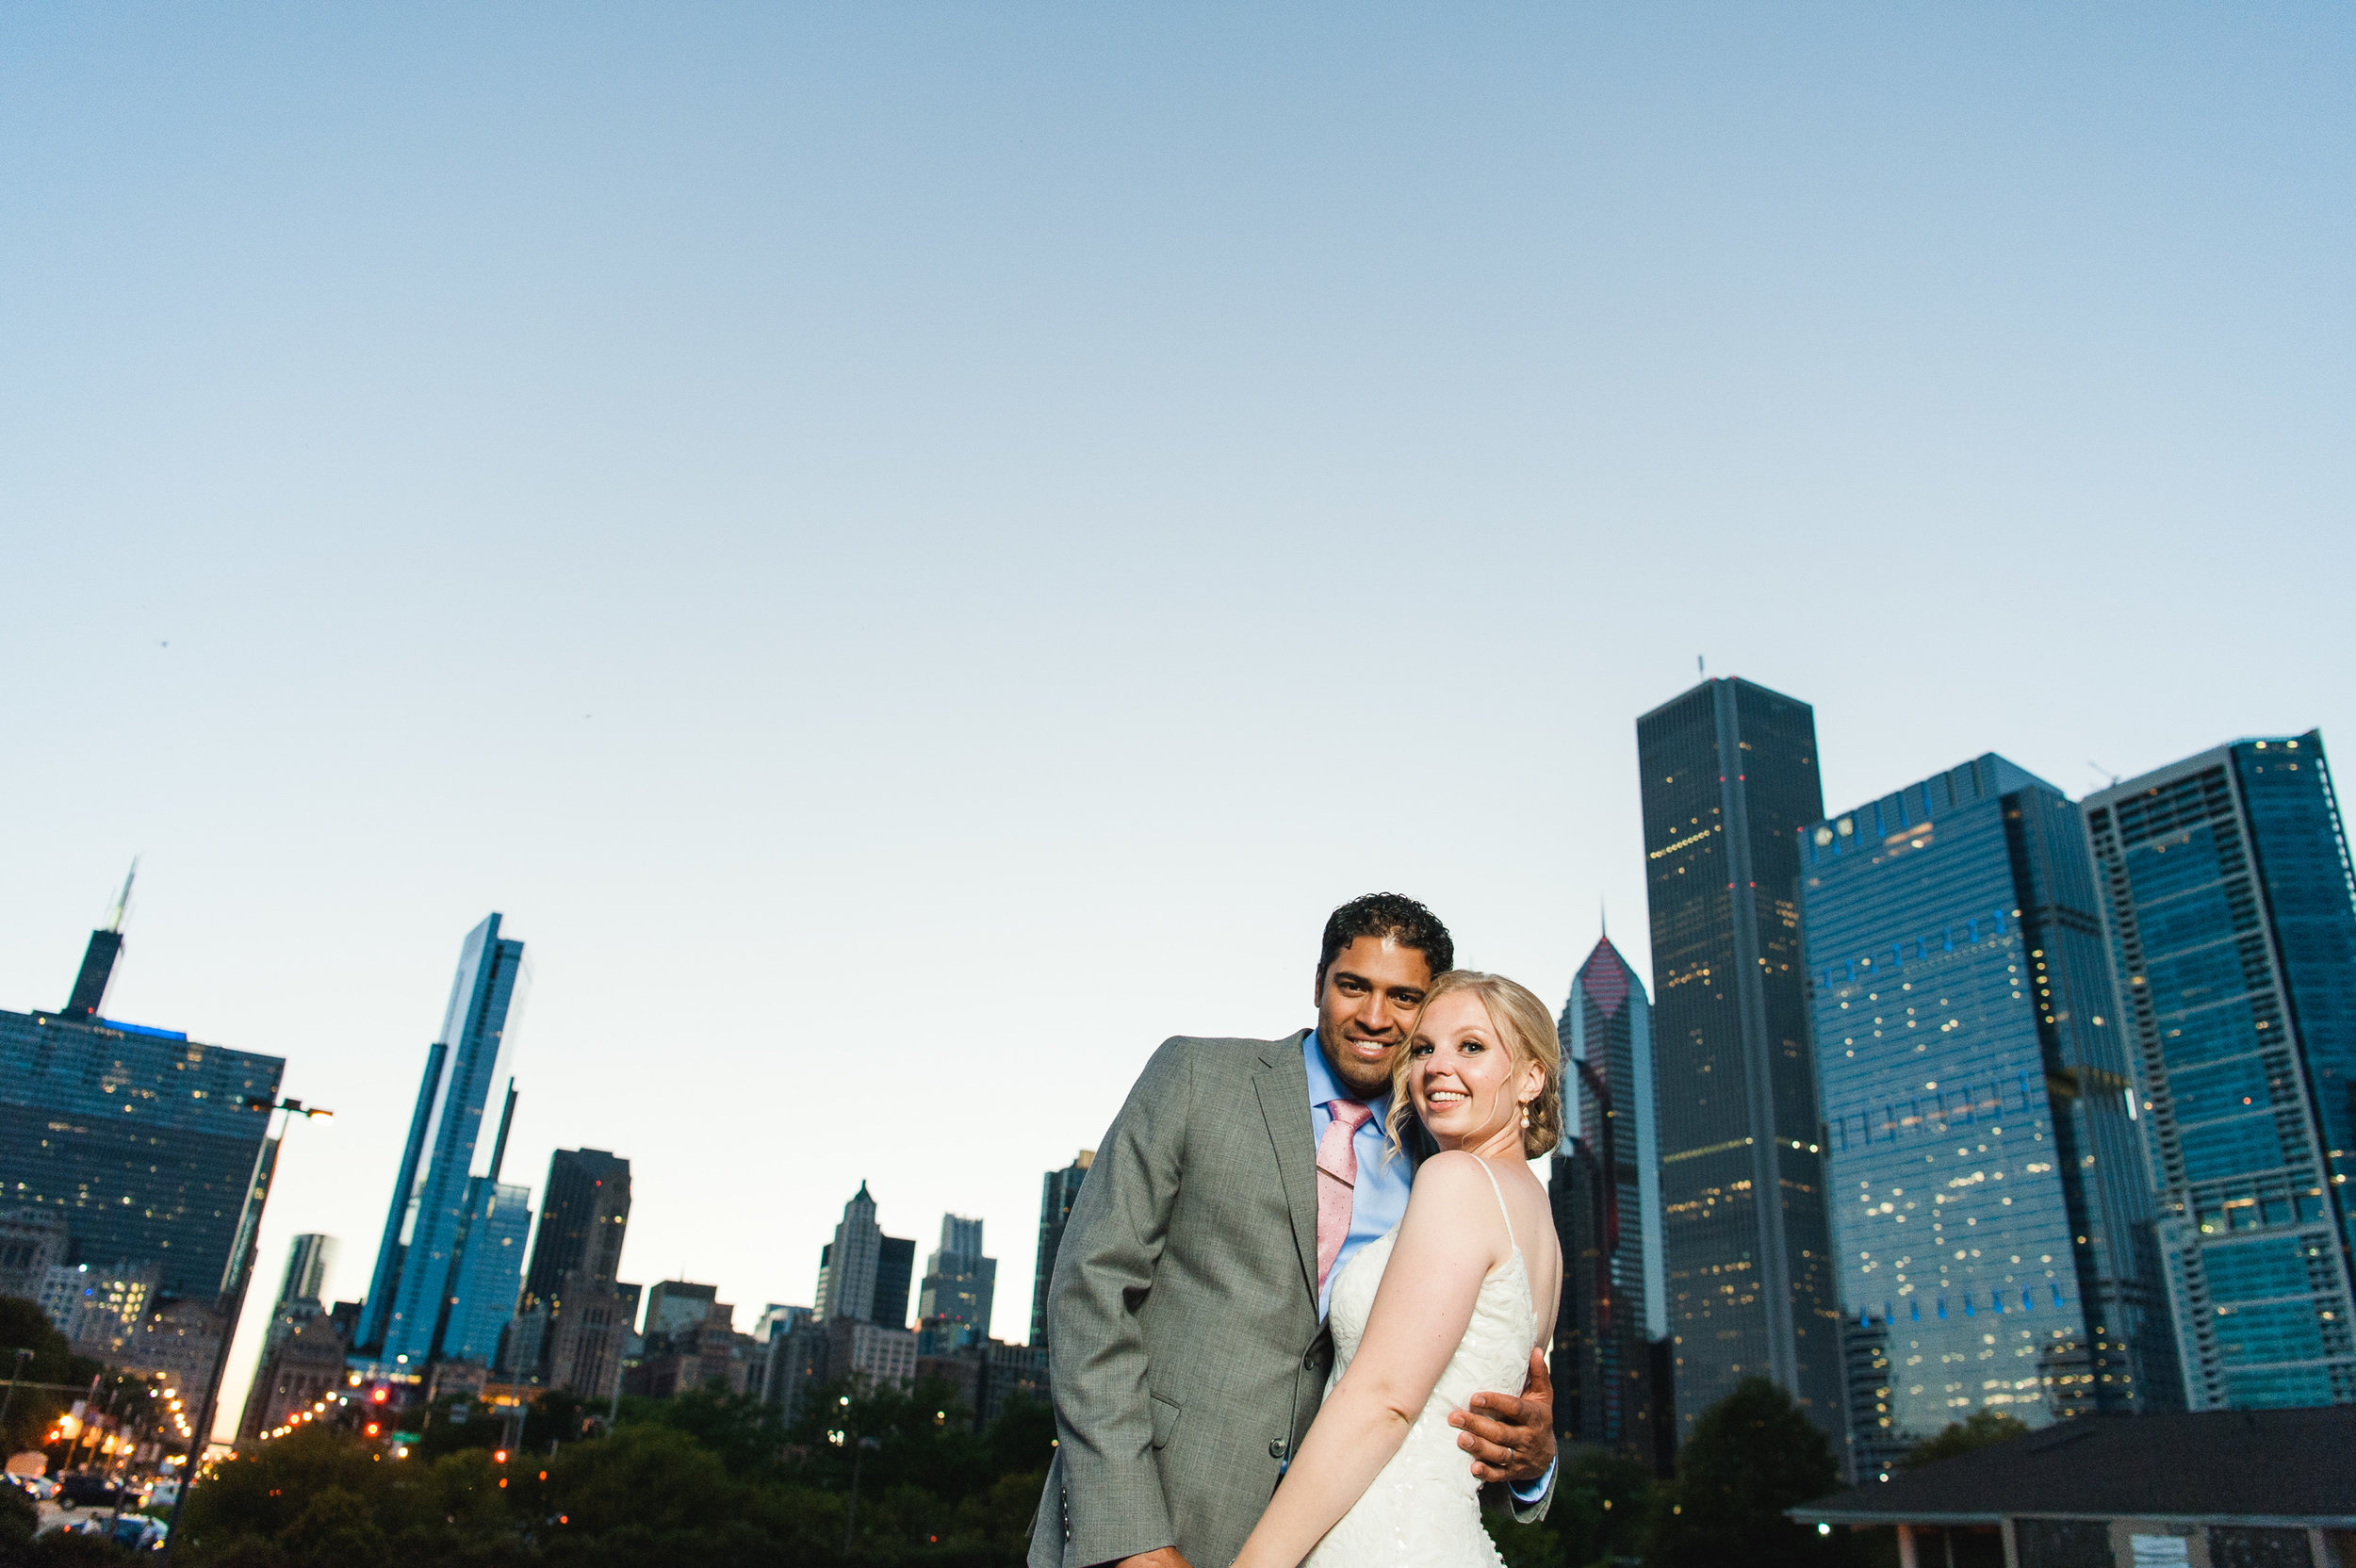 ckp-Chicago-Yacht-Club-Wedding-0131.jpg